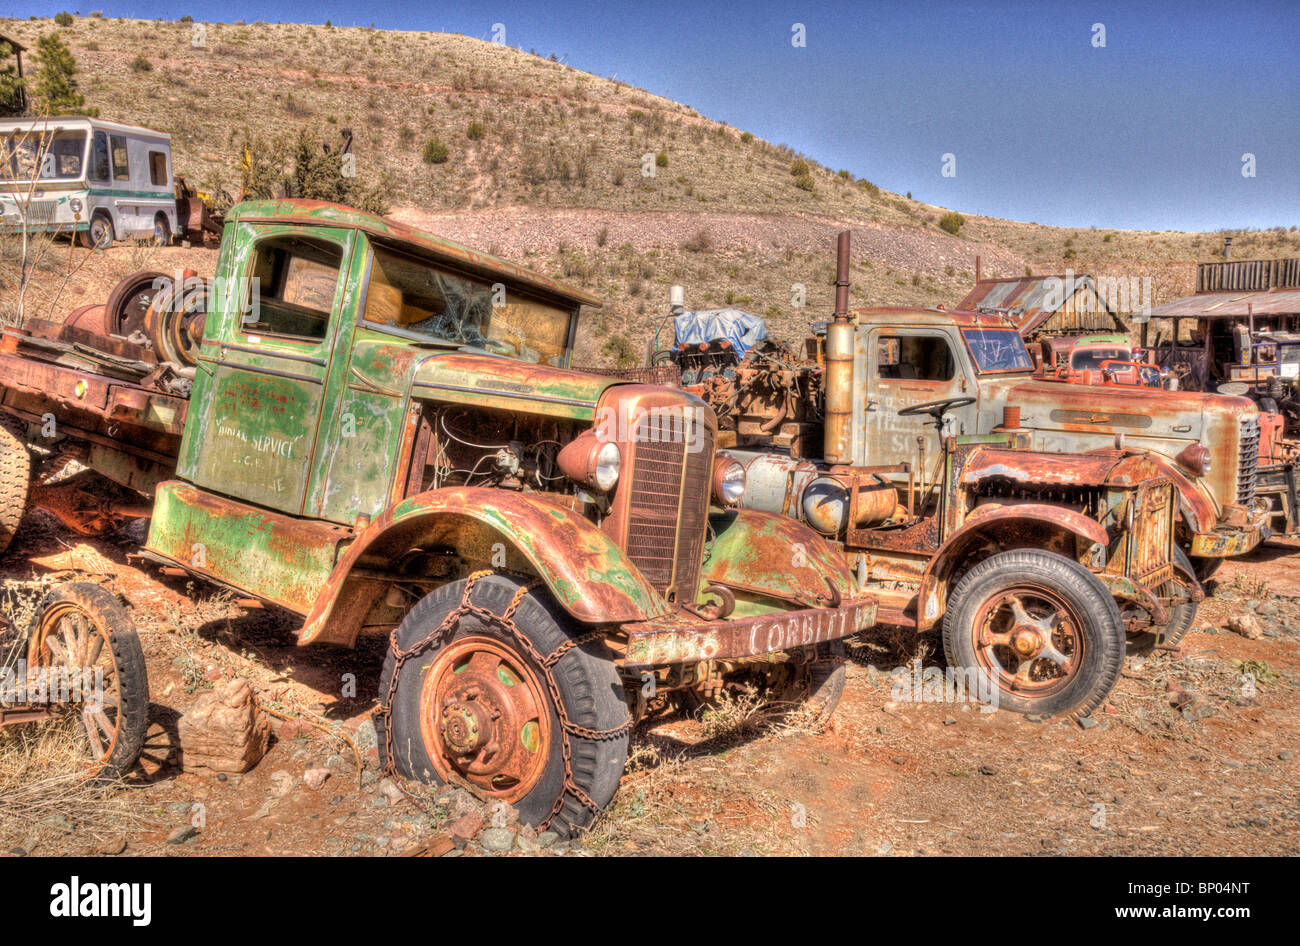 Old Trucks Stock Photos & Old Trucks Stock Images - Alamy